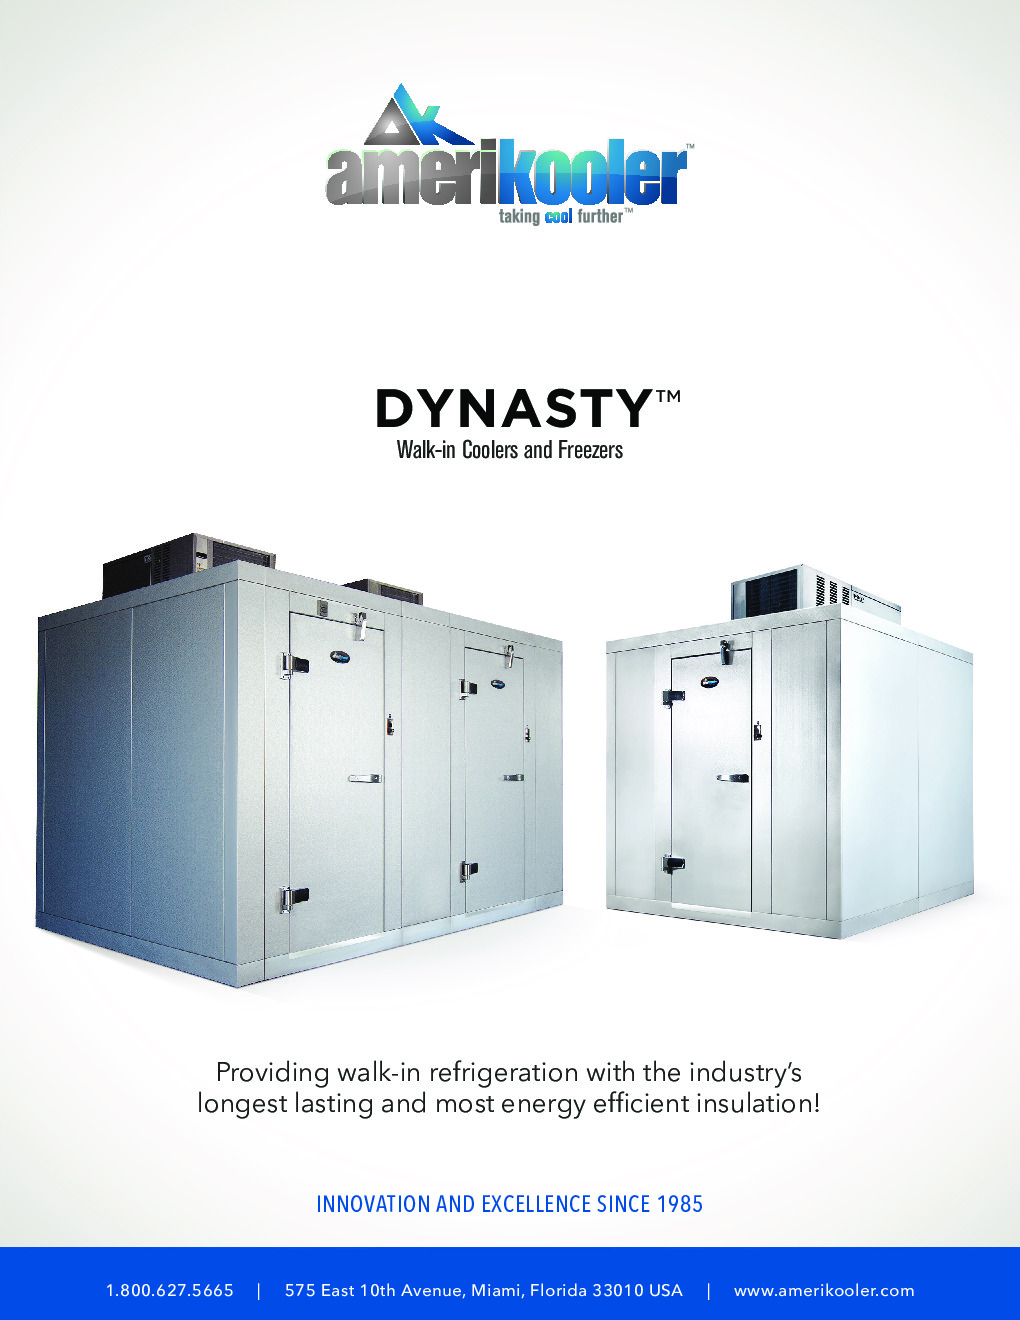 AmeriKooler DW081477F-5/9-RM 8' X 14' Walk-In Cooler, 9' L Cooler with Floor and 5' L Freezer, Remote